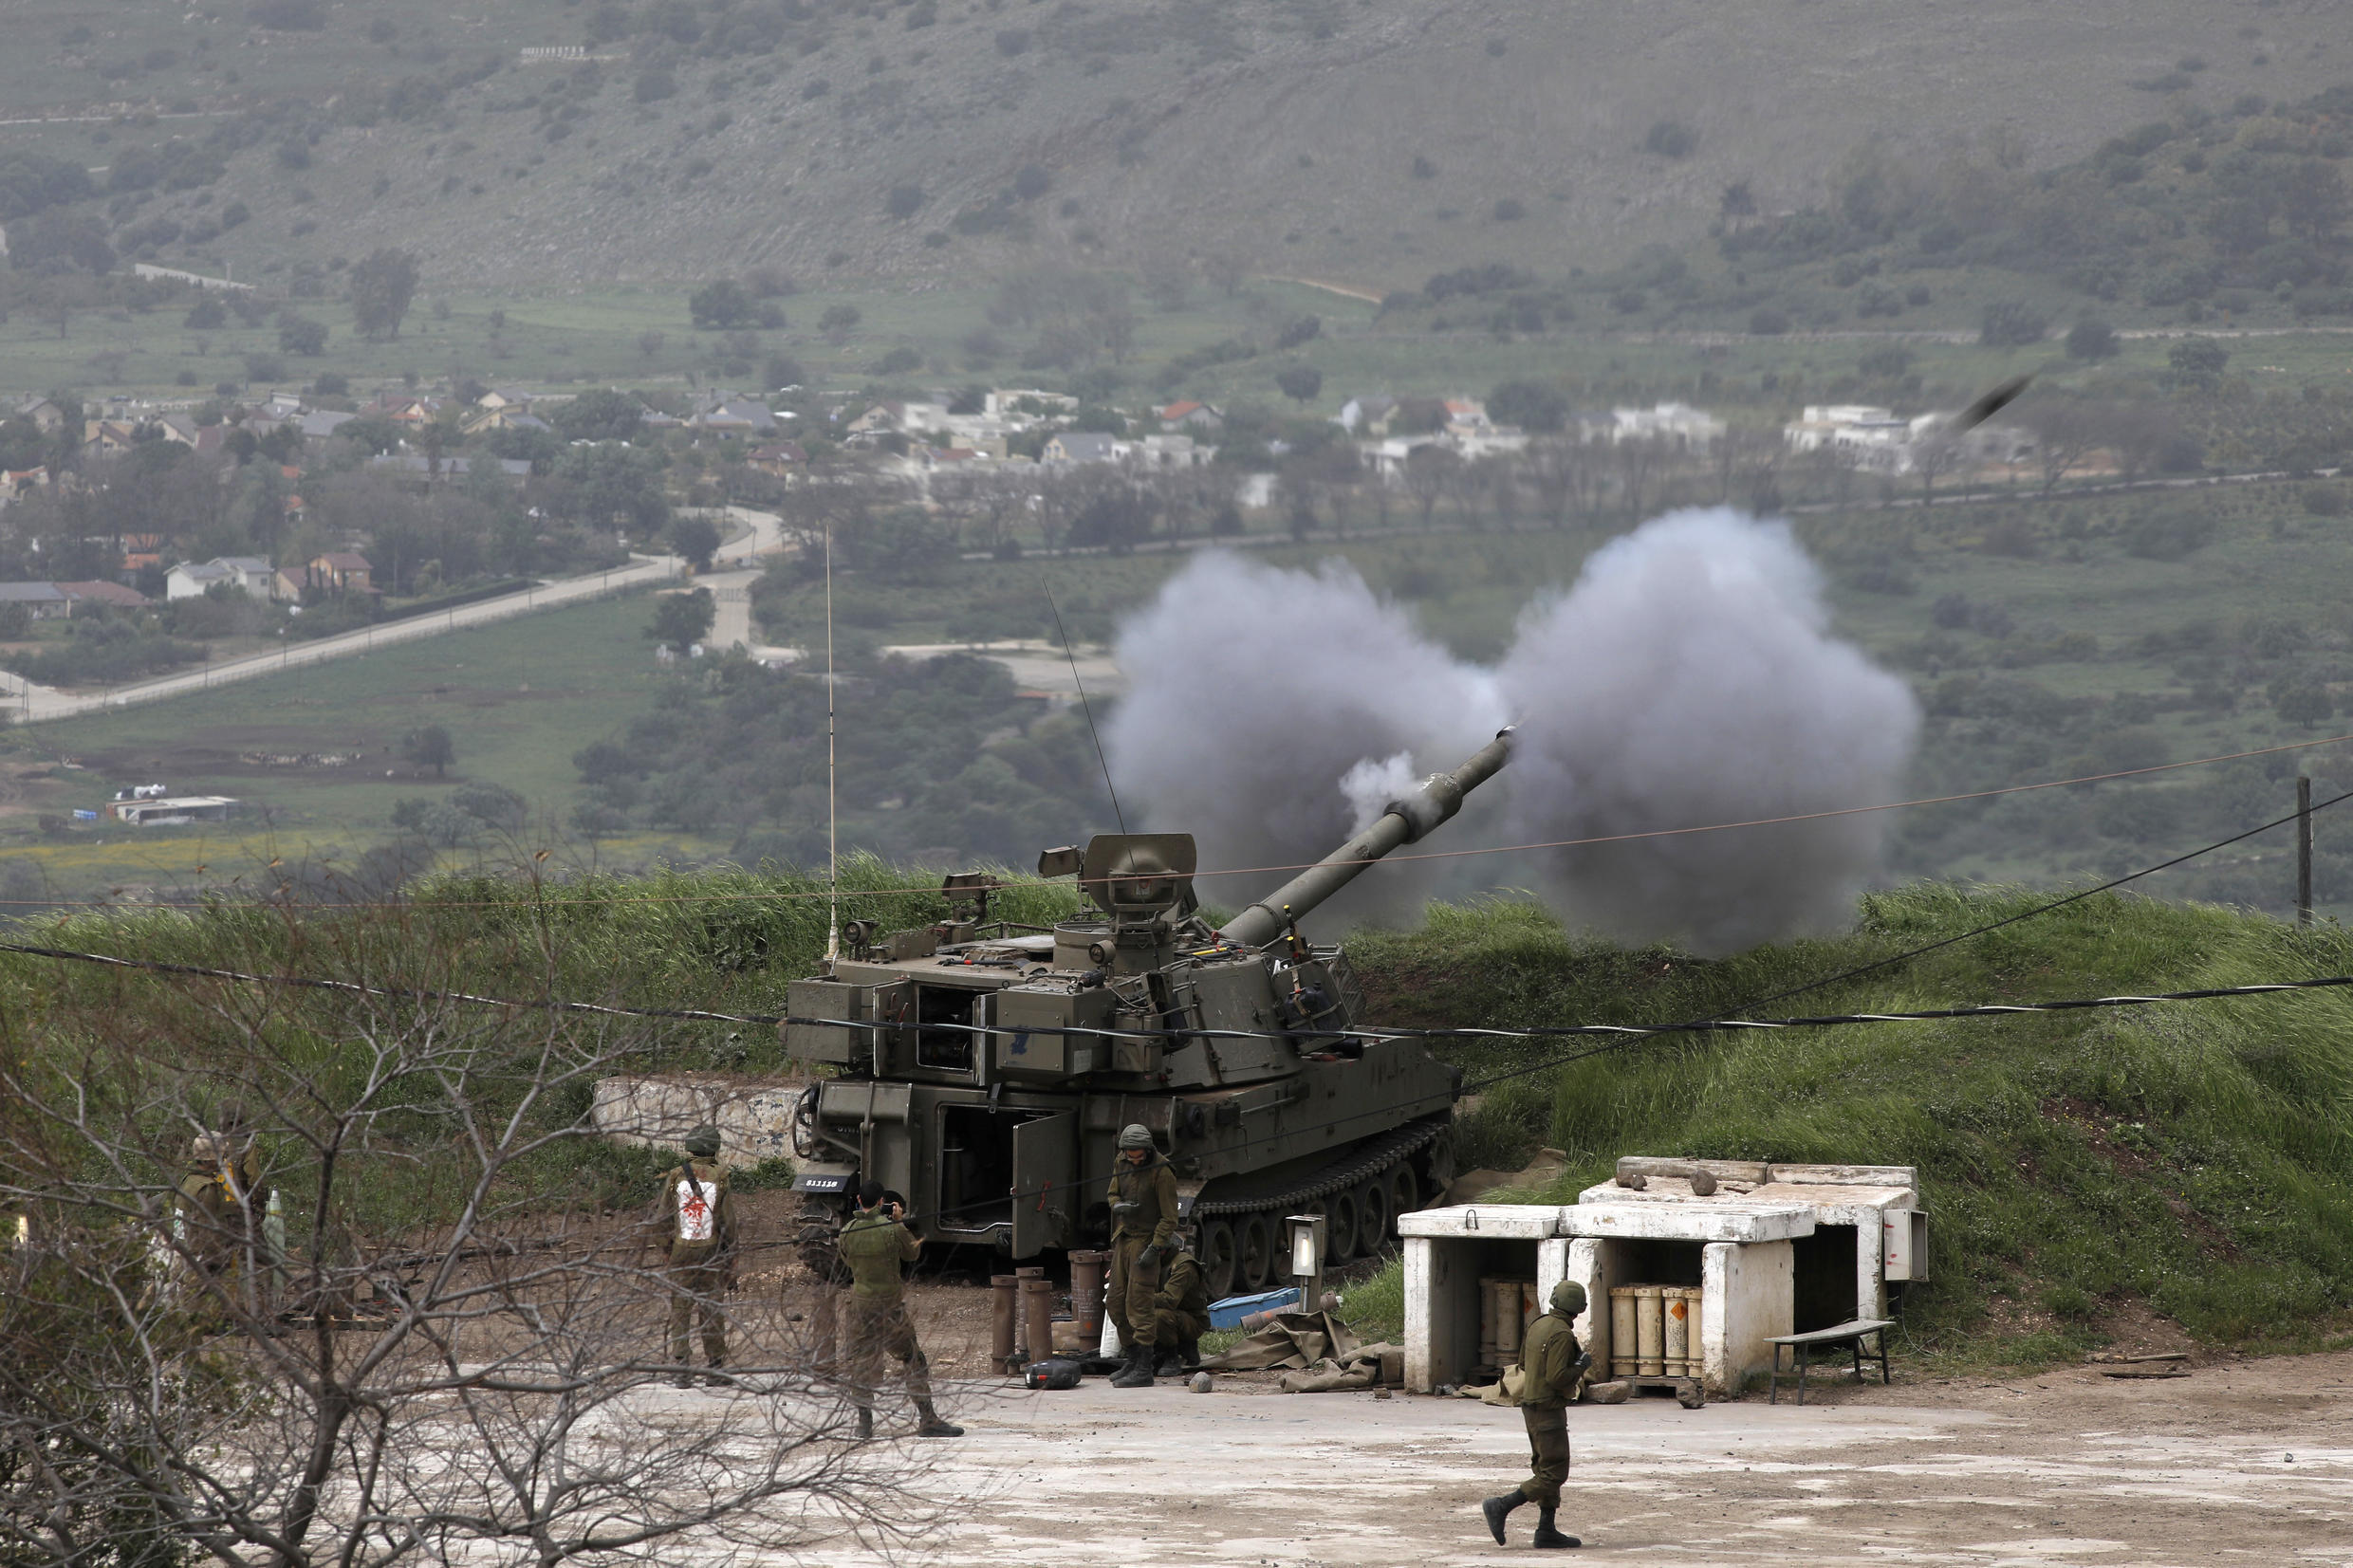 Israeli soldiers take part in a mobile artillery exercise near the border with Syria in the Israeli-occupied Golan Heights on April 5, 2020